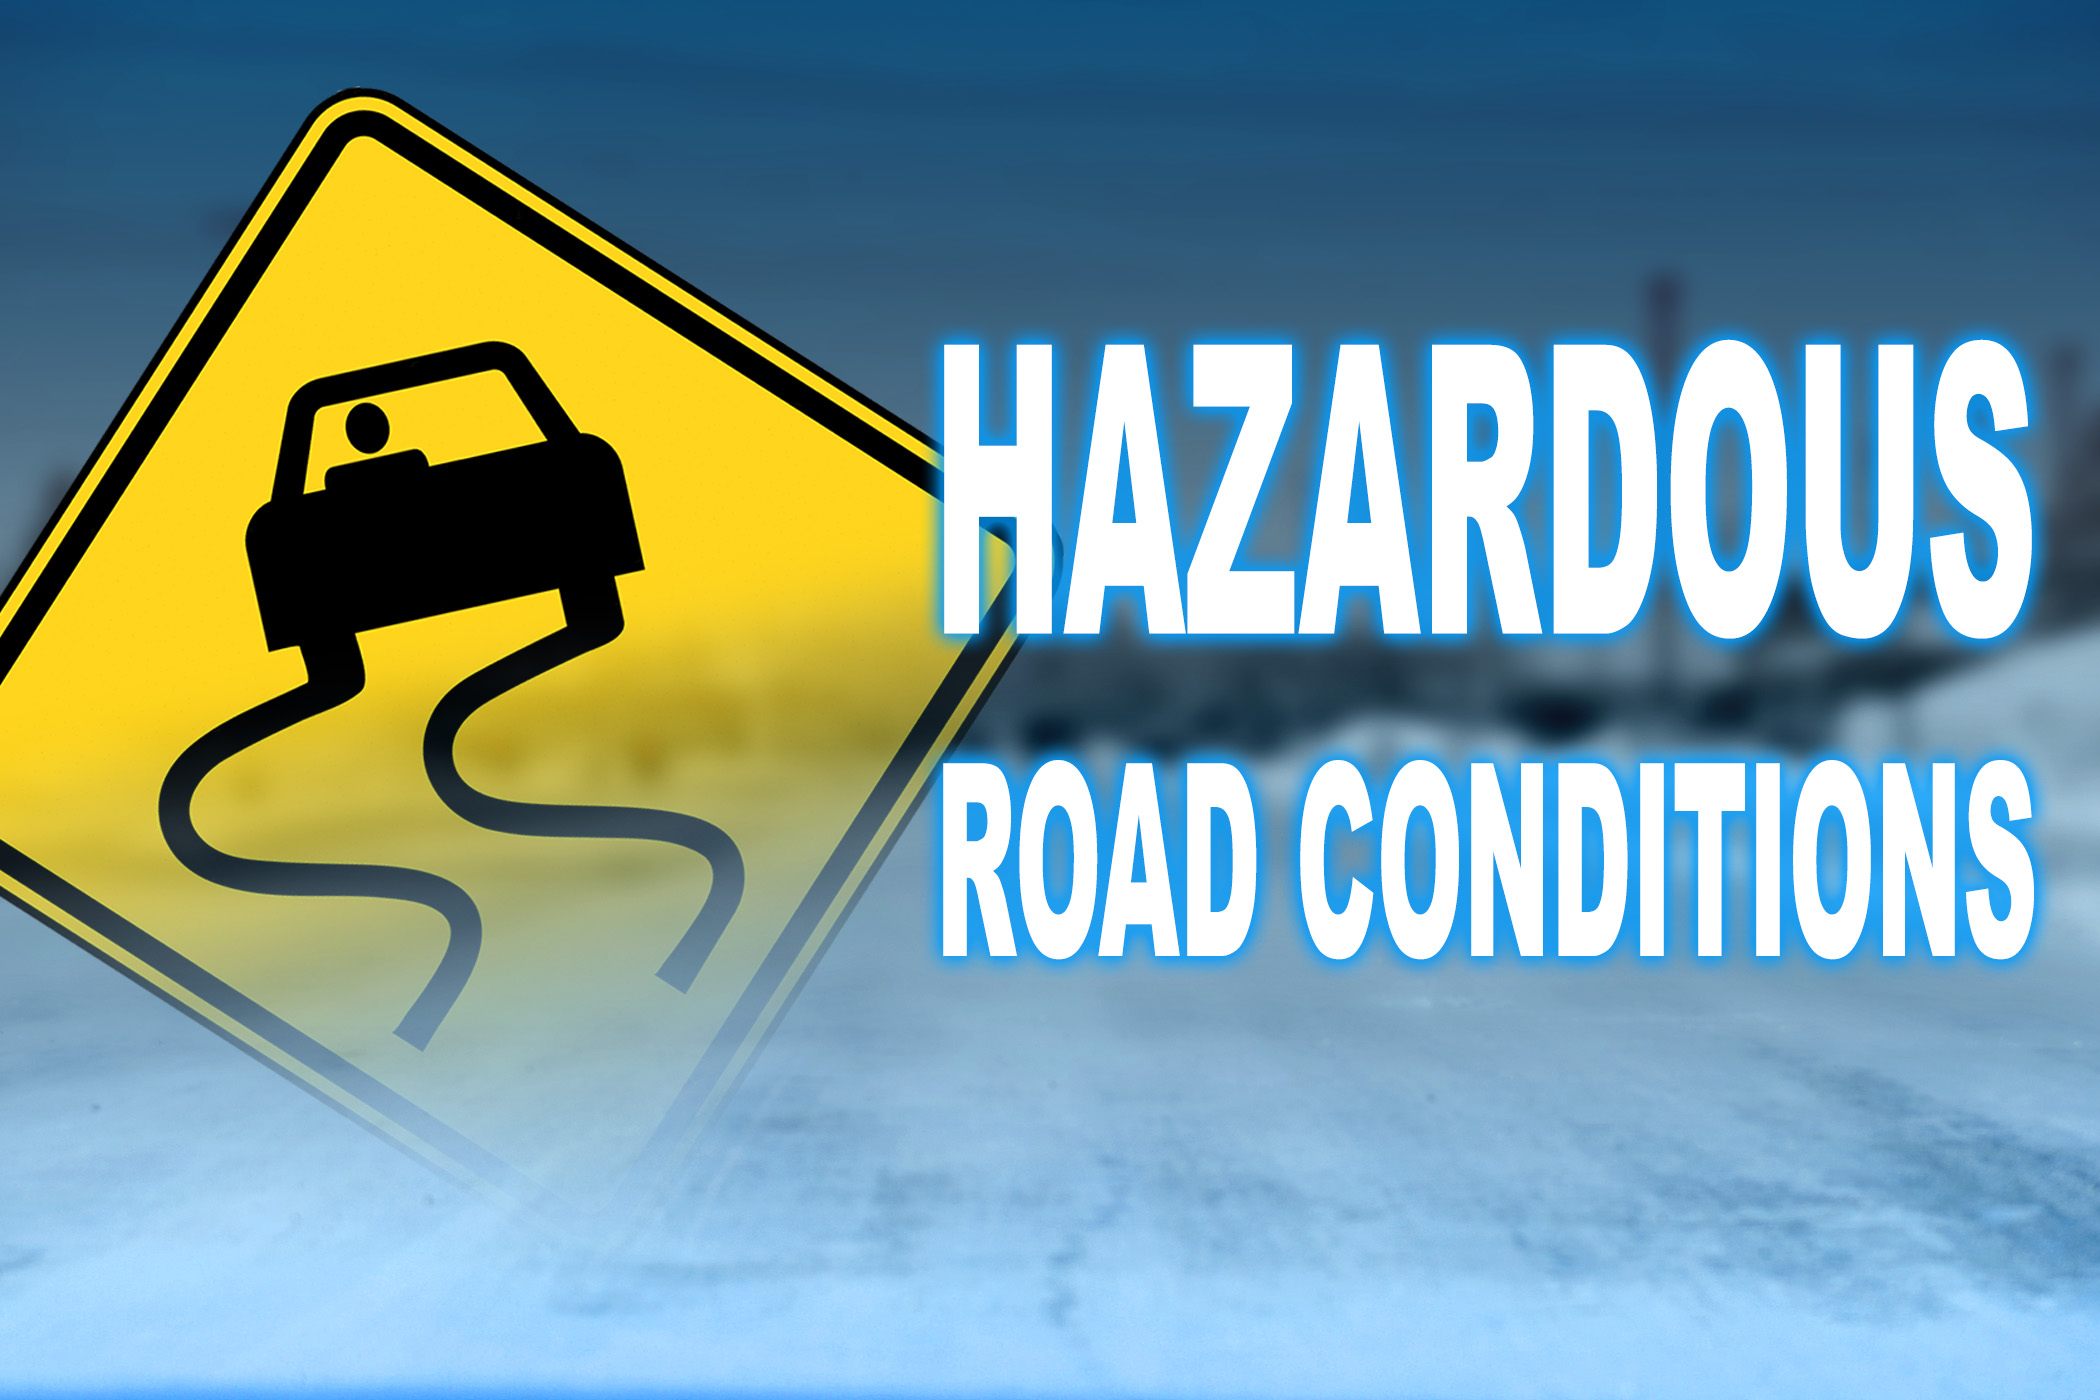 Hazardous road conditions: slow down, drive safe > Malmstrom Air